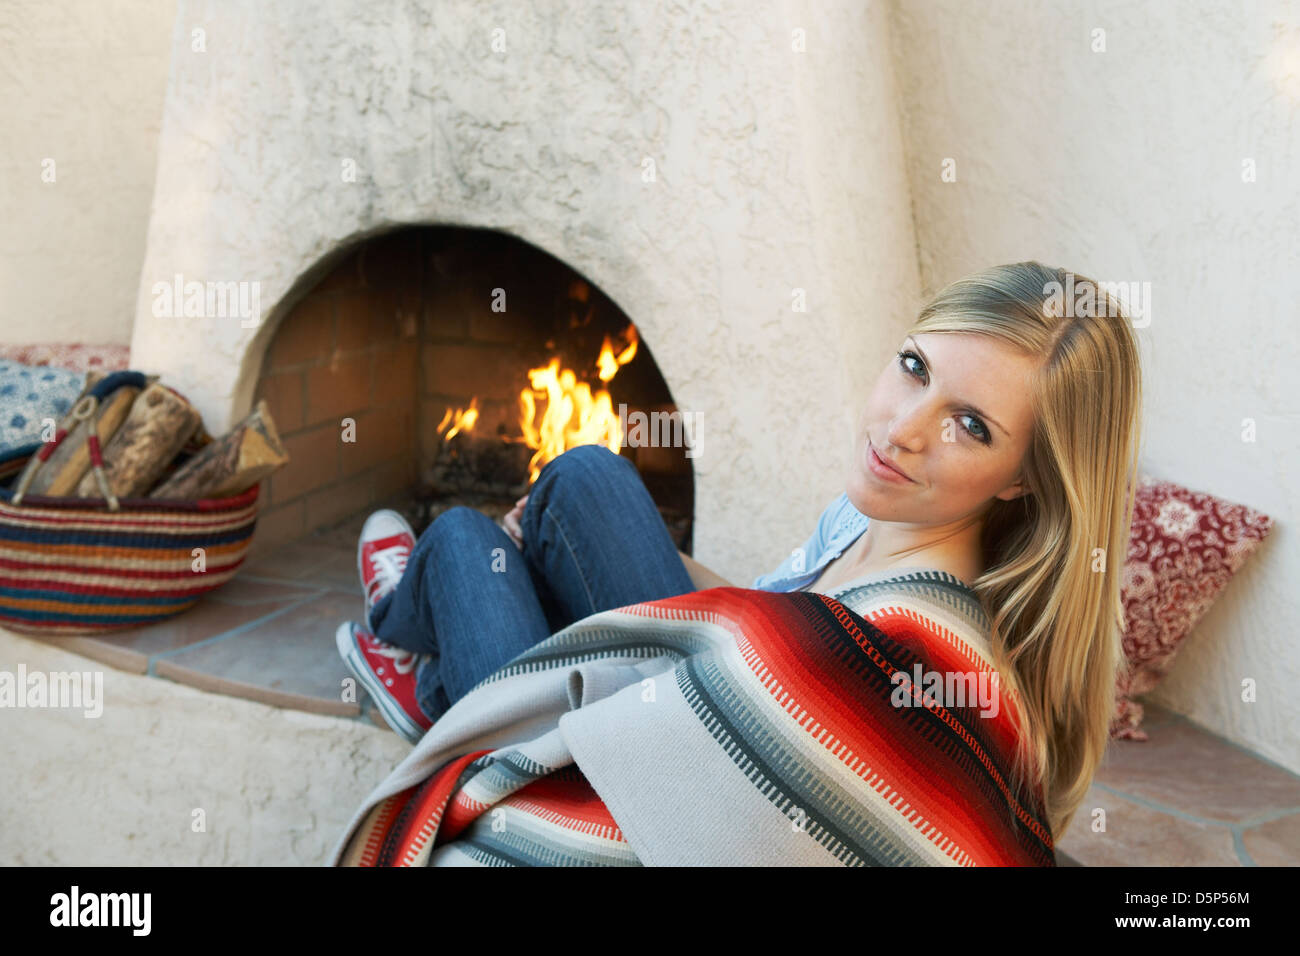 21 year old woman in front of outdoor southwest fireplace - Stock Image